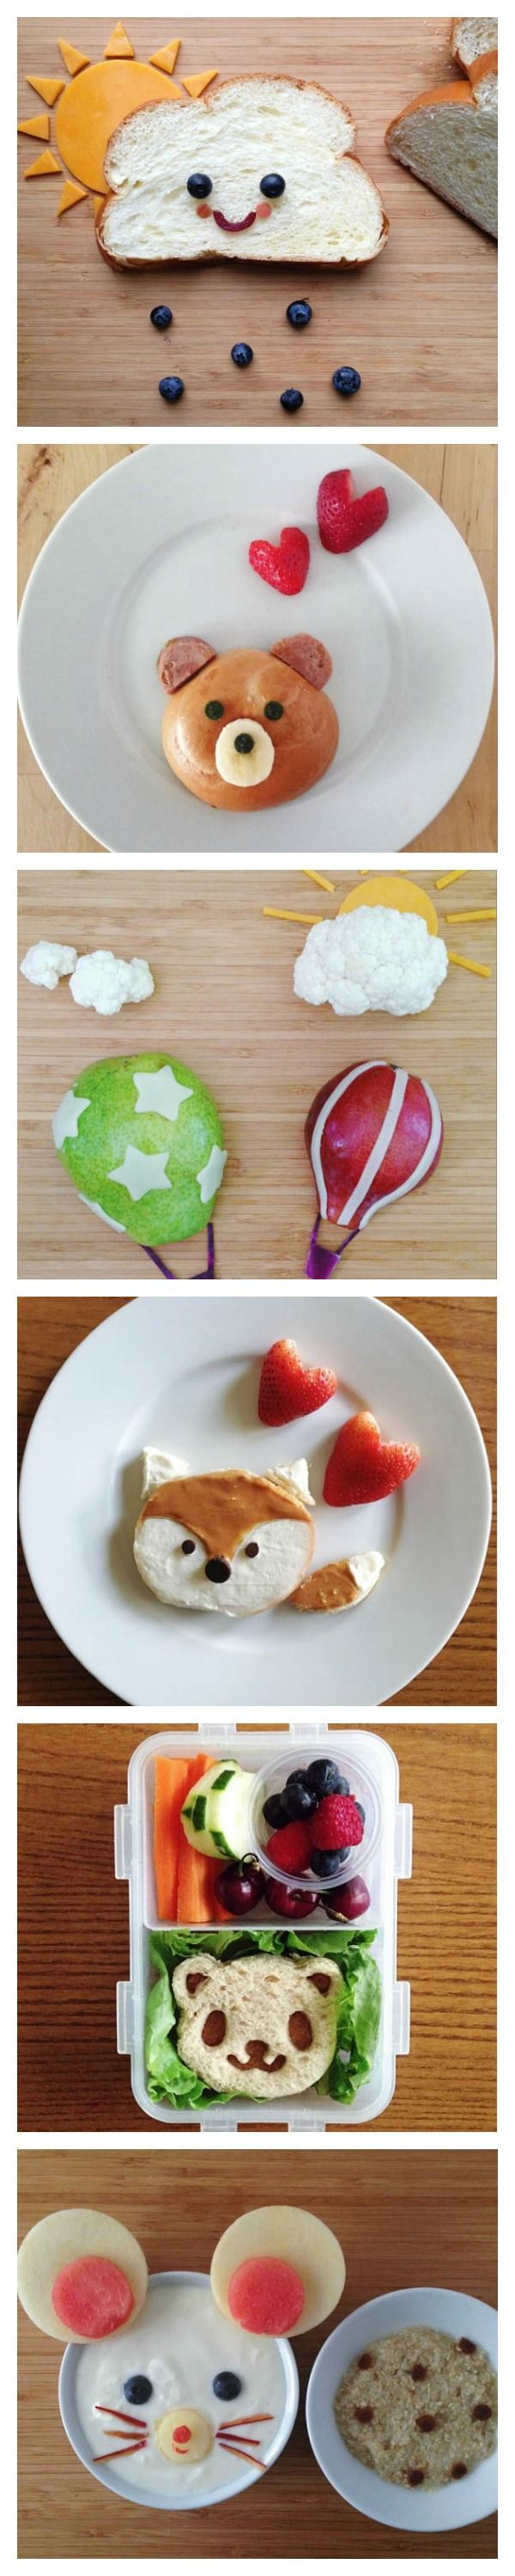 These fun lunchbox ideas are perfect for the kids. Kawaii food art